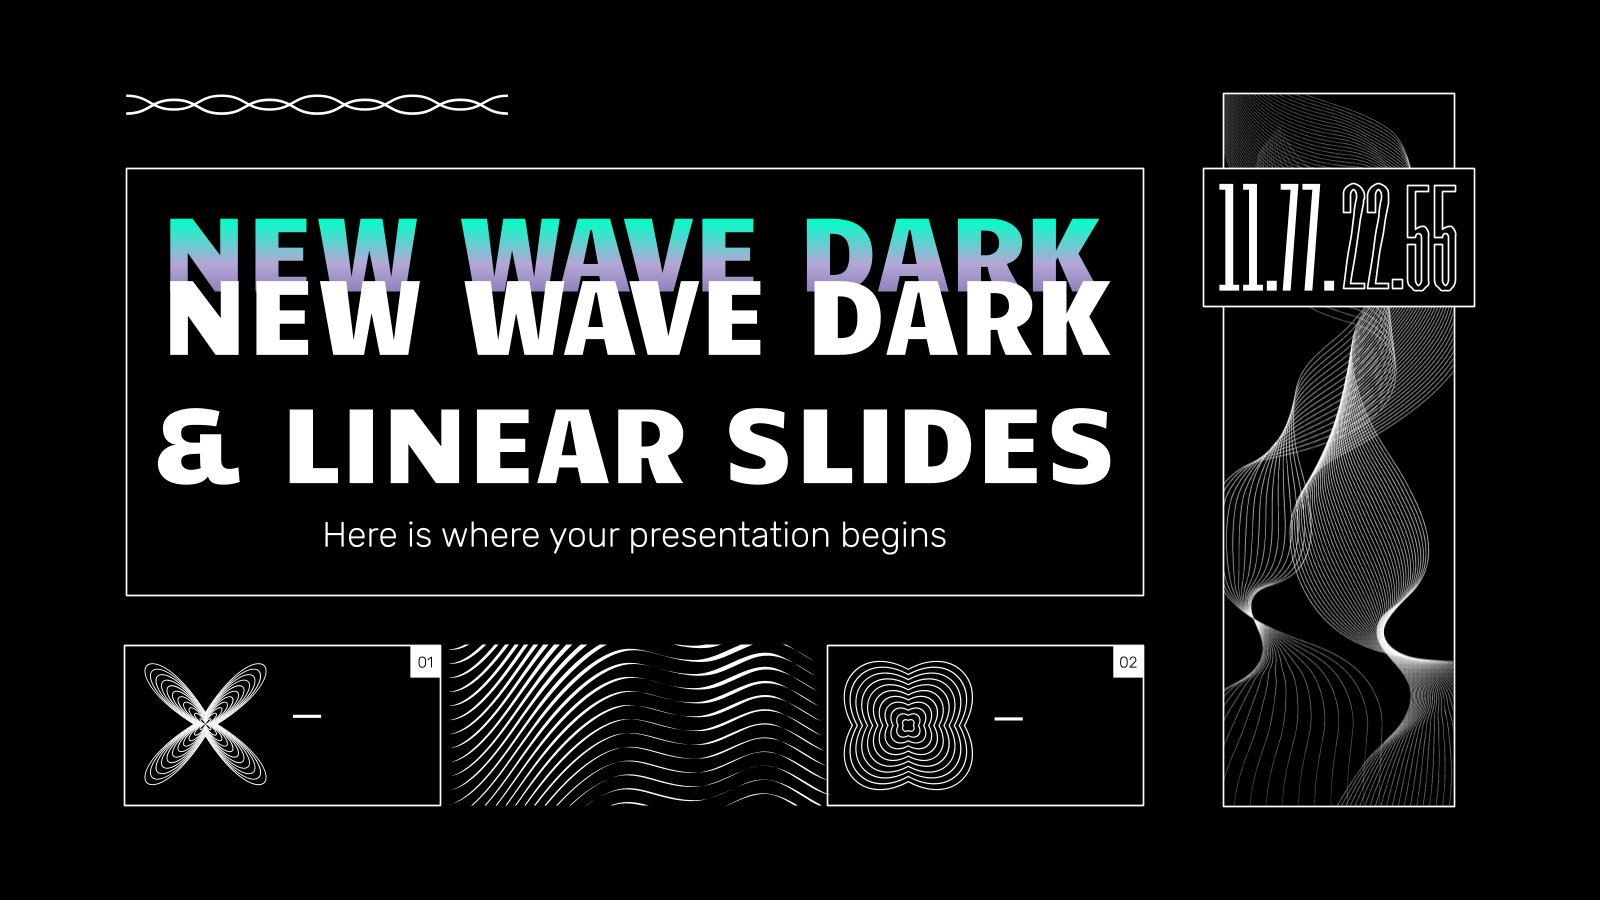 New Wave Dark & Linear Slides presentation template